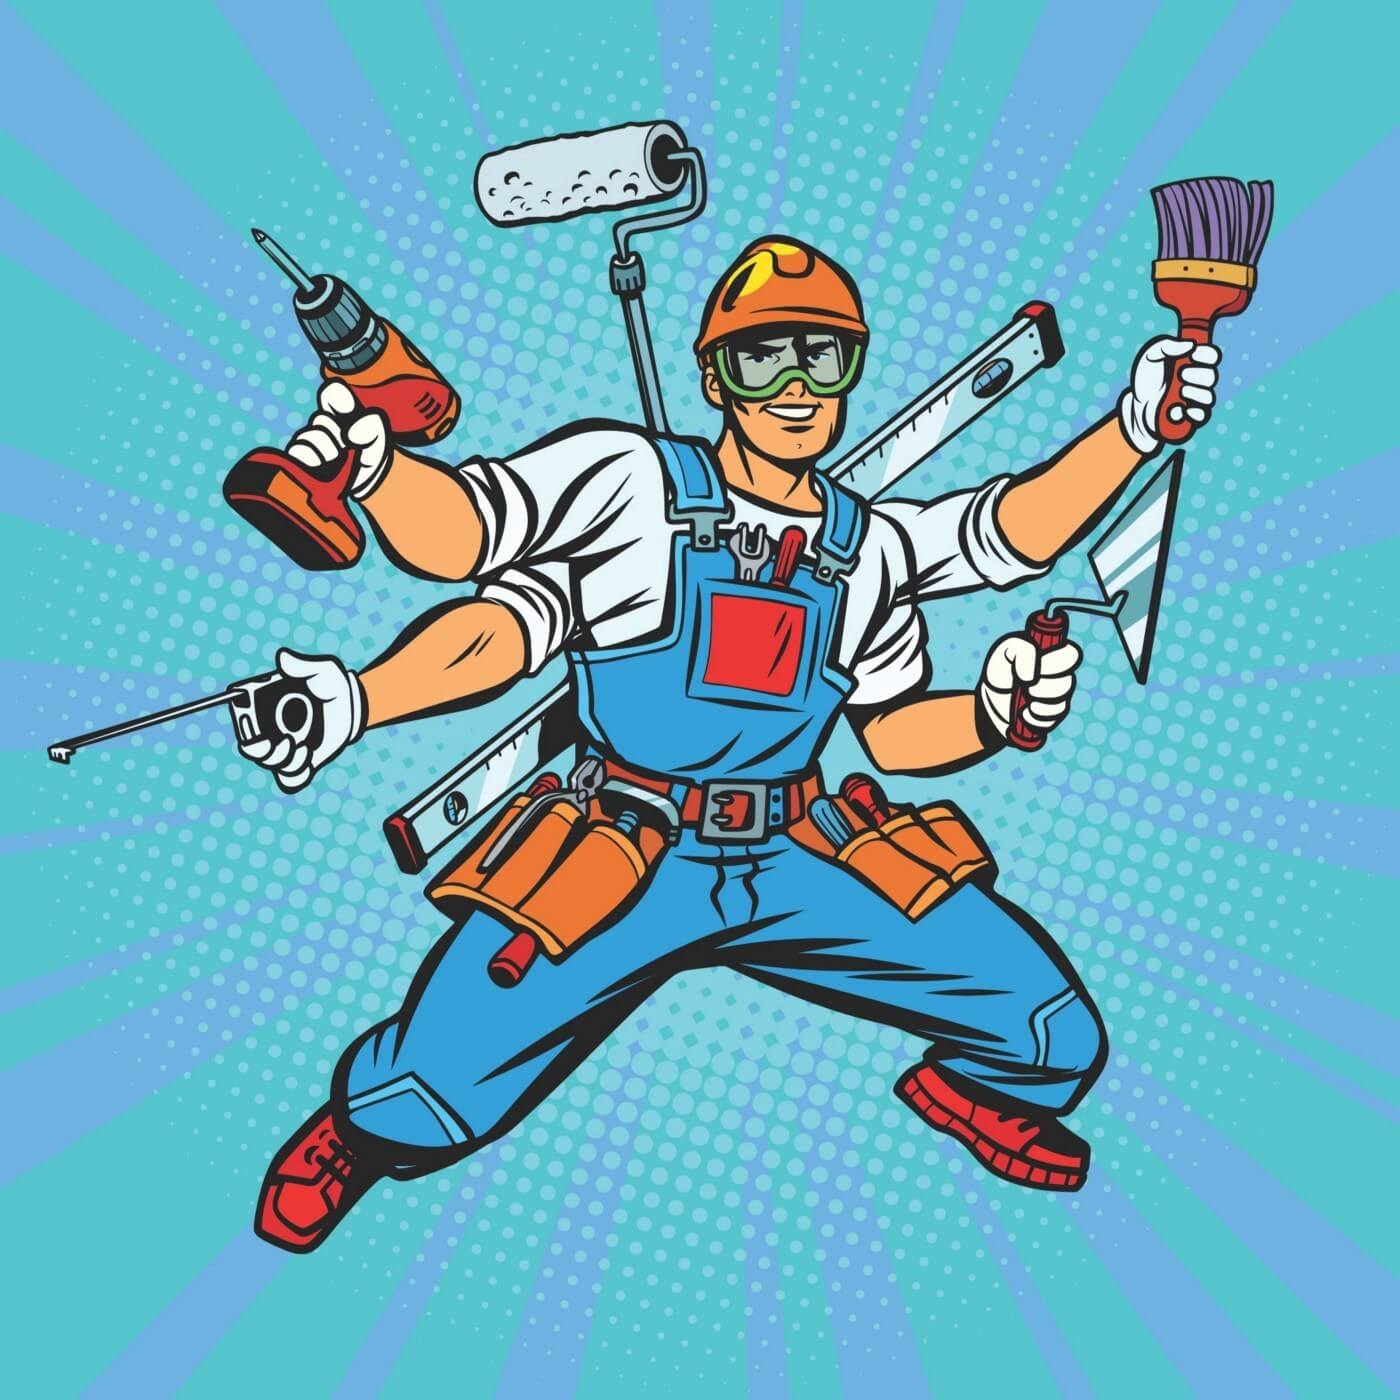 cartoon handyman with numerous tools — paint brush, trowel, measuring tape, drill, level, and many screwdrivers and wrenches